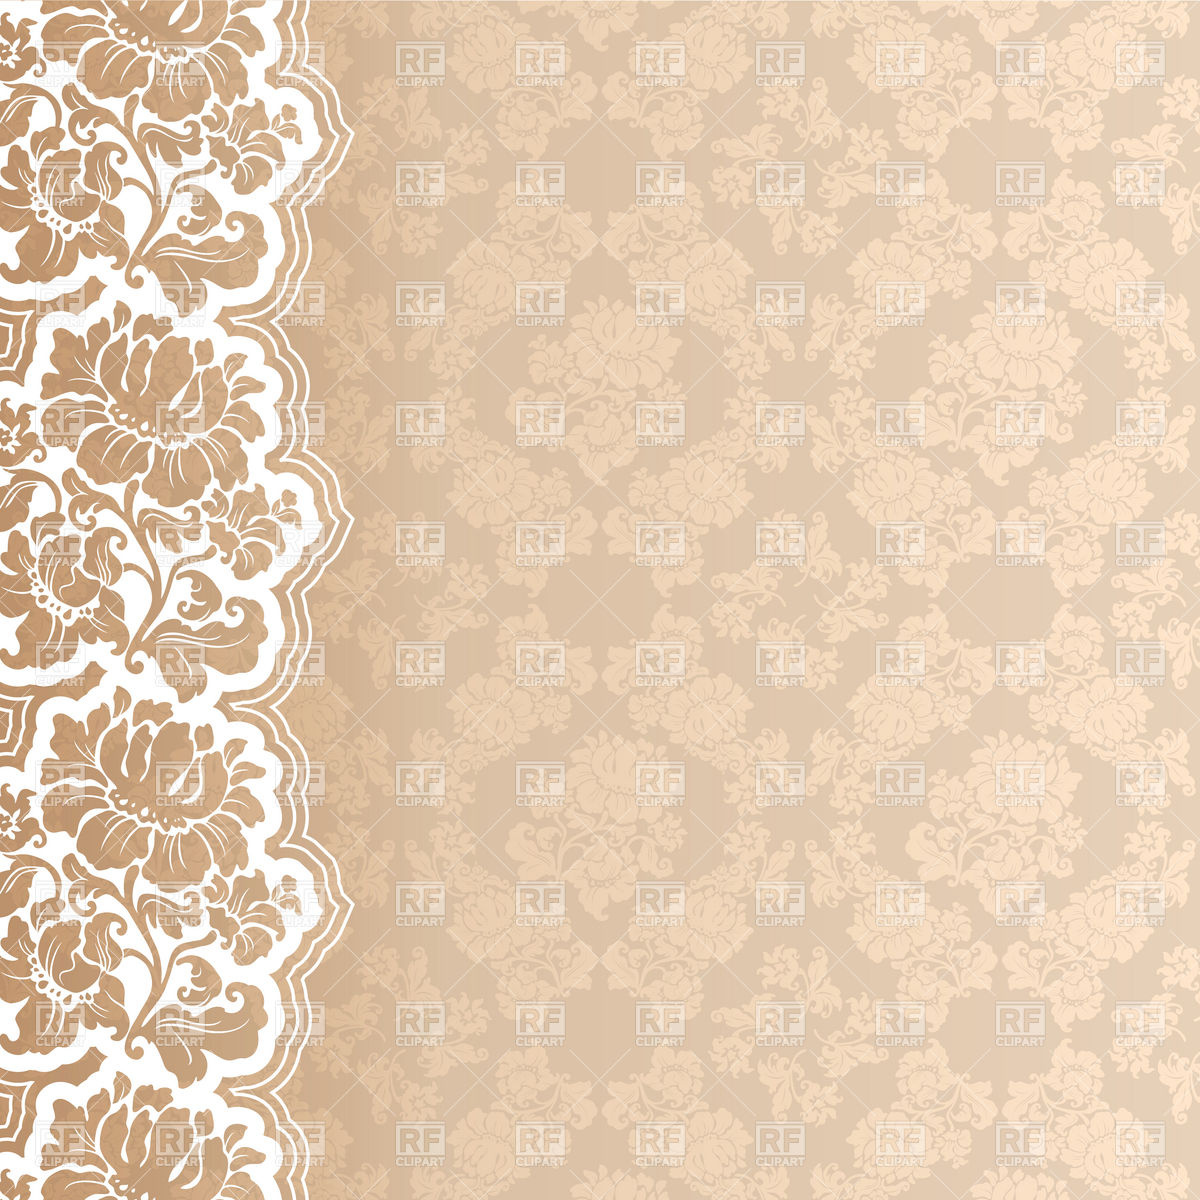 Free Download Floral Victorian Wallpaper With Lace Border 18741